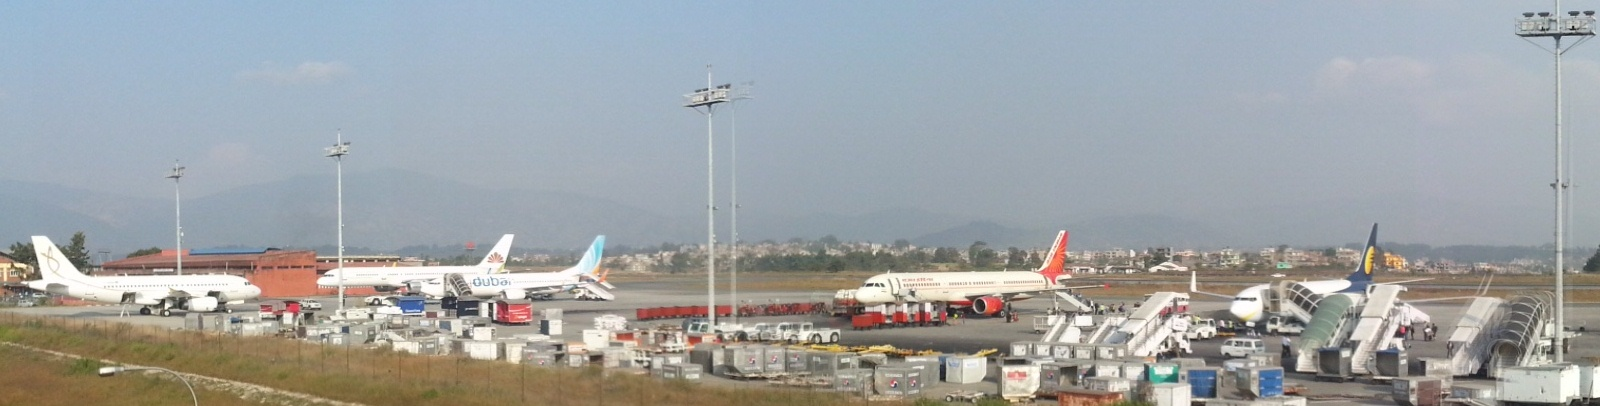 Operations At Kathmandu Airport Following Nepal Earthquake And Aftershock